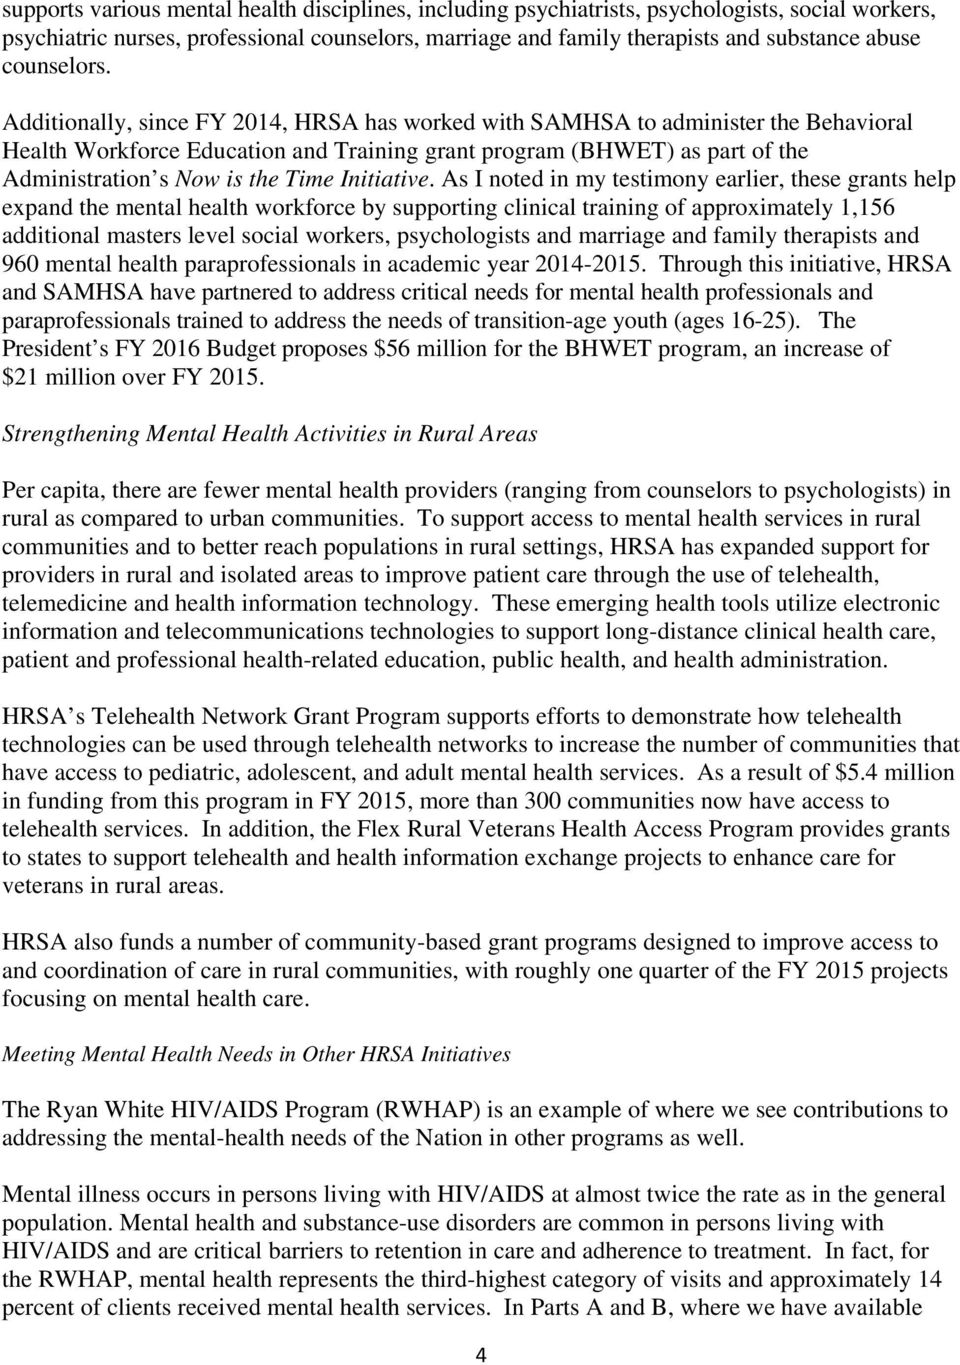 Additionally, since FY 2014, HRSA has worked with SAMHSA to administer the Behavioral Health Workforce Education and Training grant program (BHWET) as part of the Administration s Now is the Time